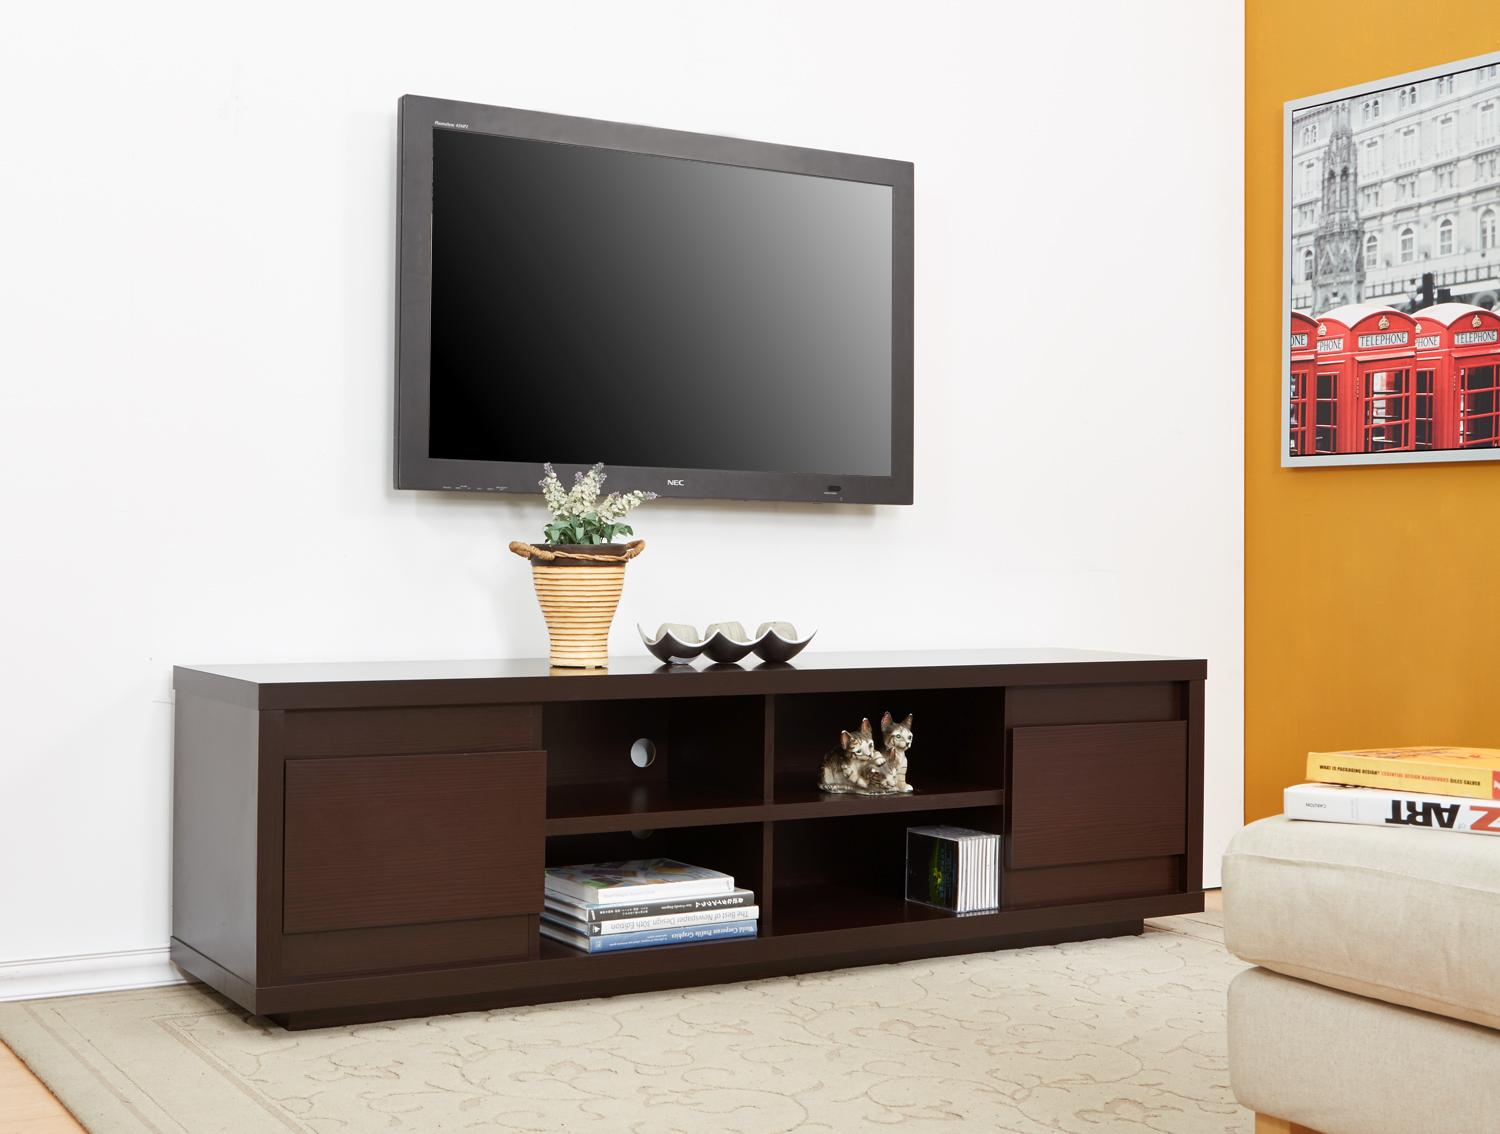 lab kirry multi storage tv stand the enitial lab kirry multi storage